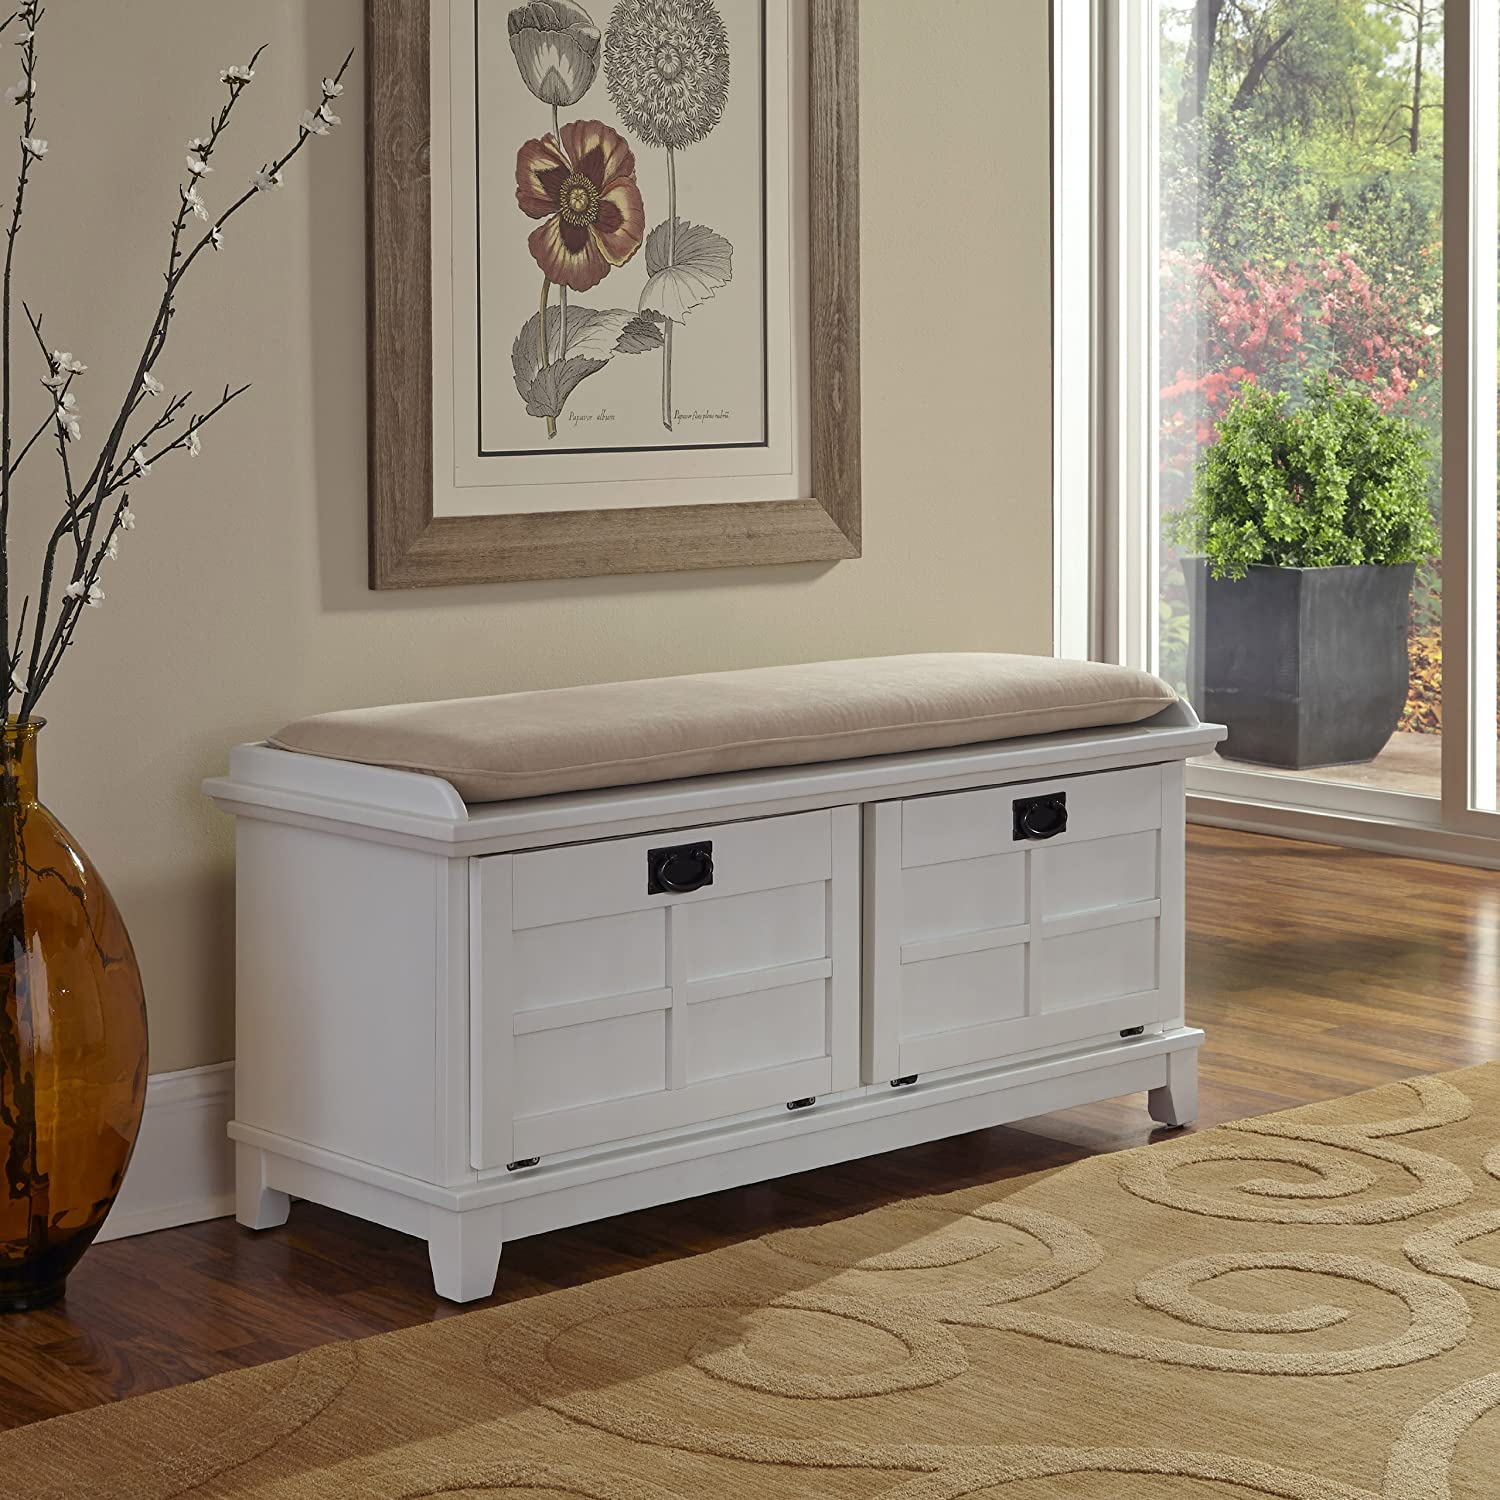 Amazon.com Home Styles Arts and Crafts Upholstered Bench White Kitchen u0026 Dining & Amazon.com: Home Styles Arts and Crafts Upholstered Bench White ...